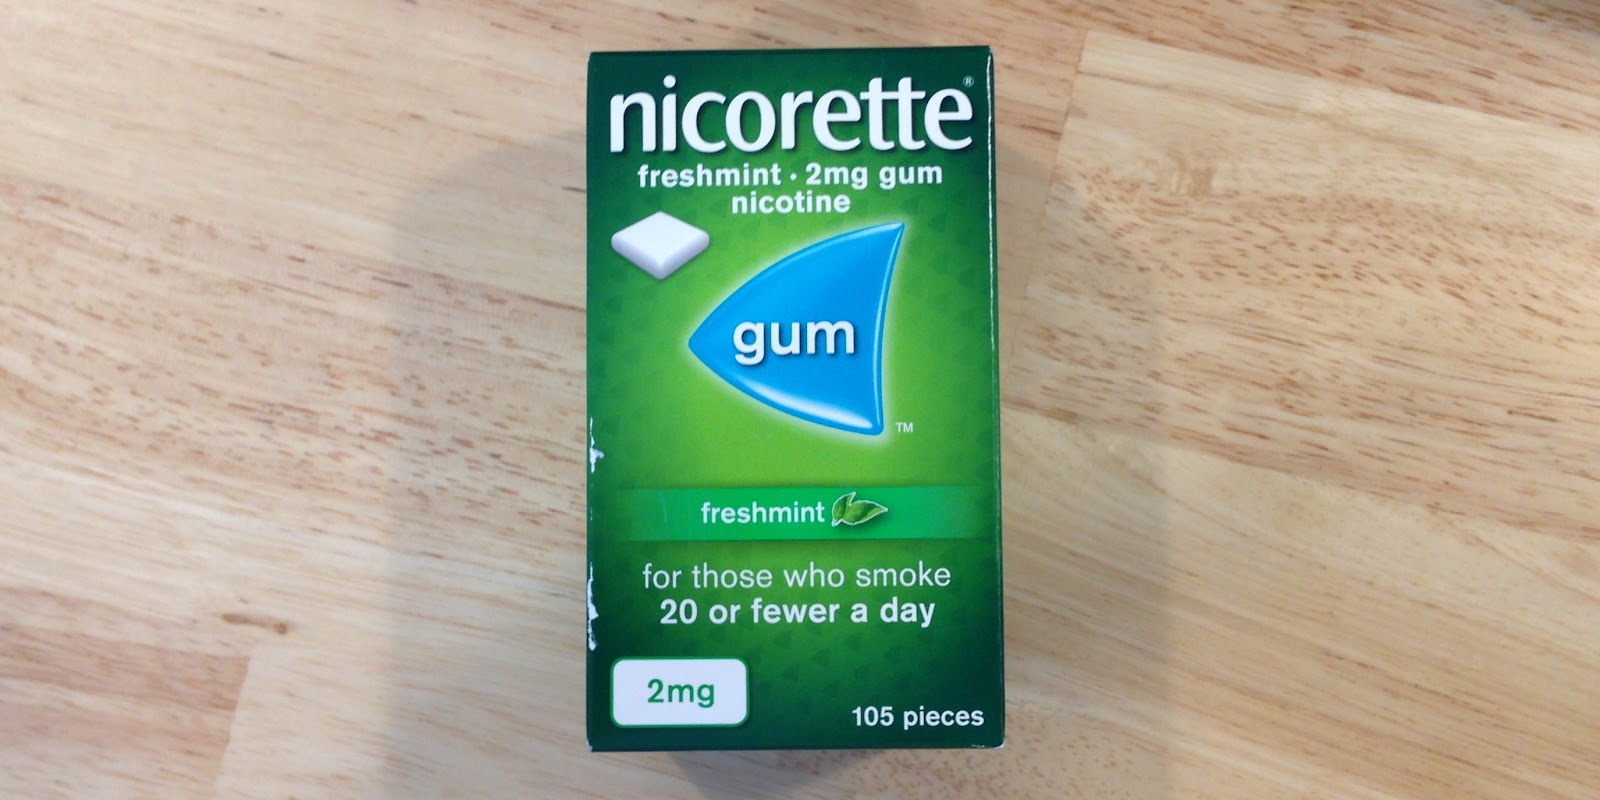 echo-nicorette-gum-2mg-on-table